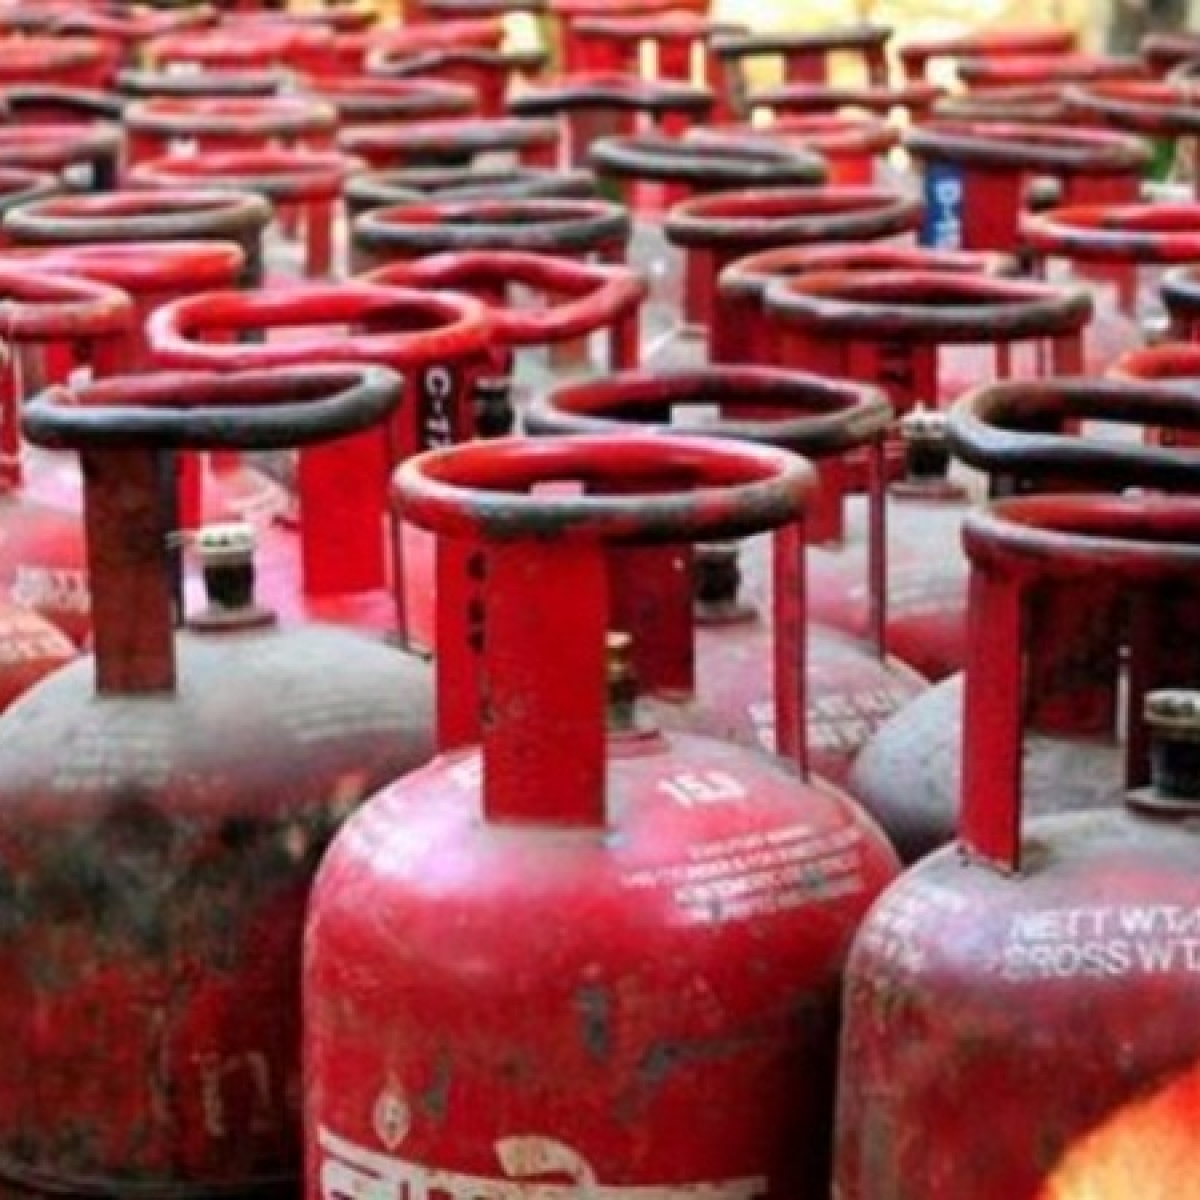 LPG cylinder to cost Rs 100 less in Delhi from today